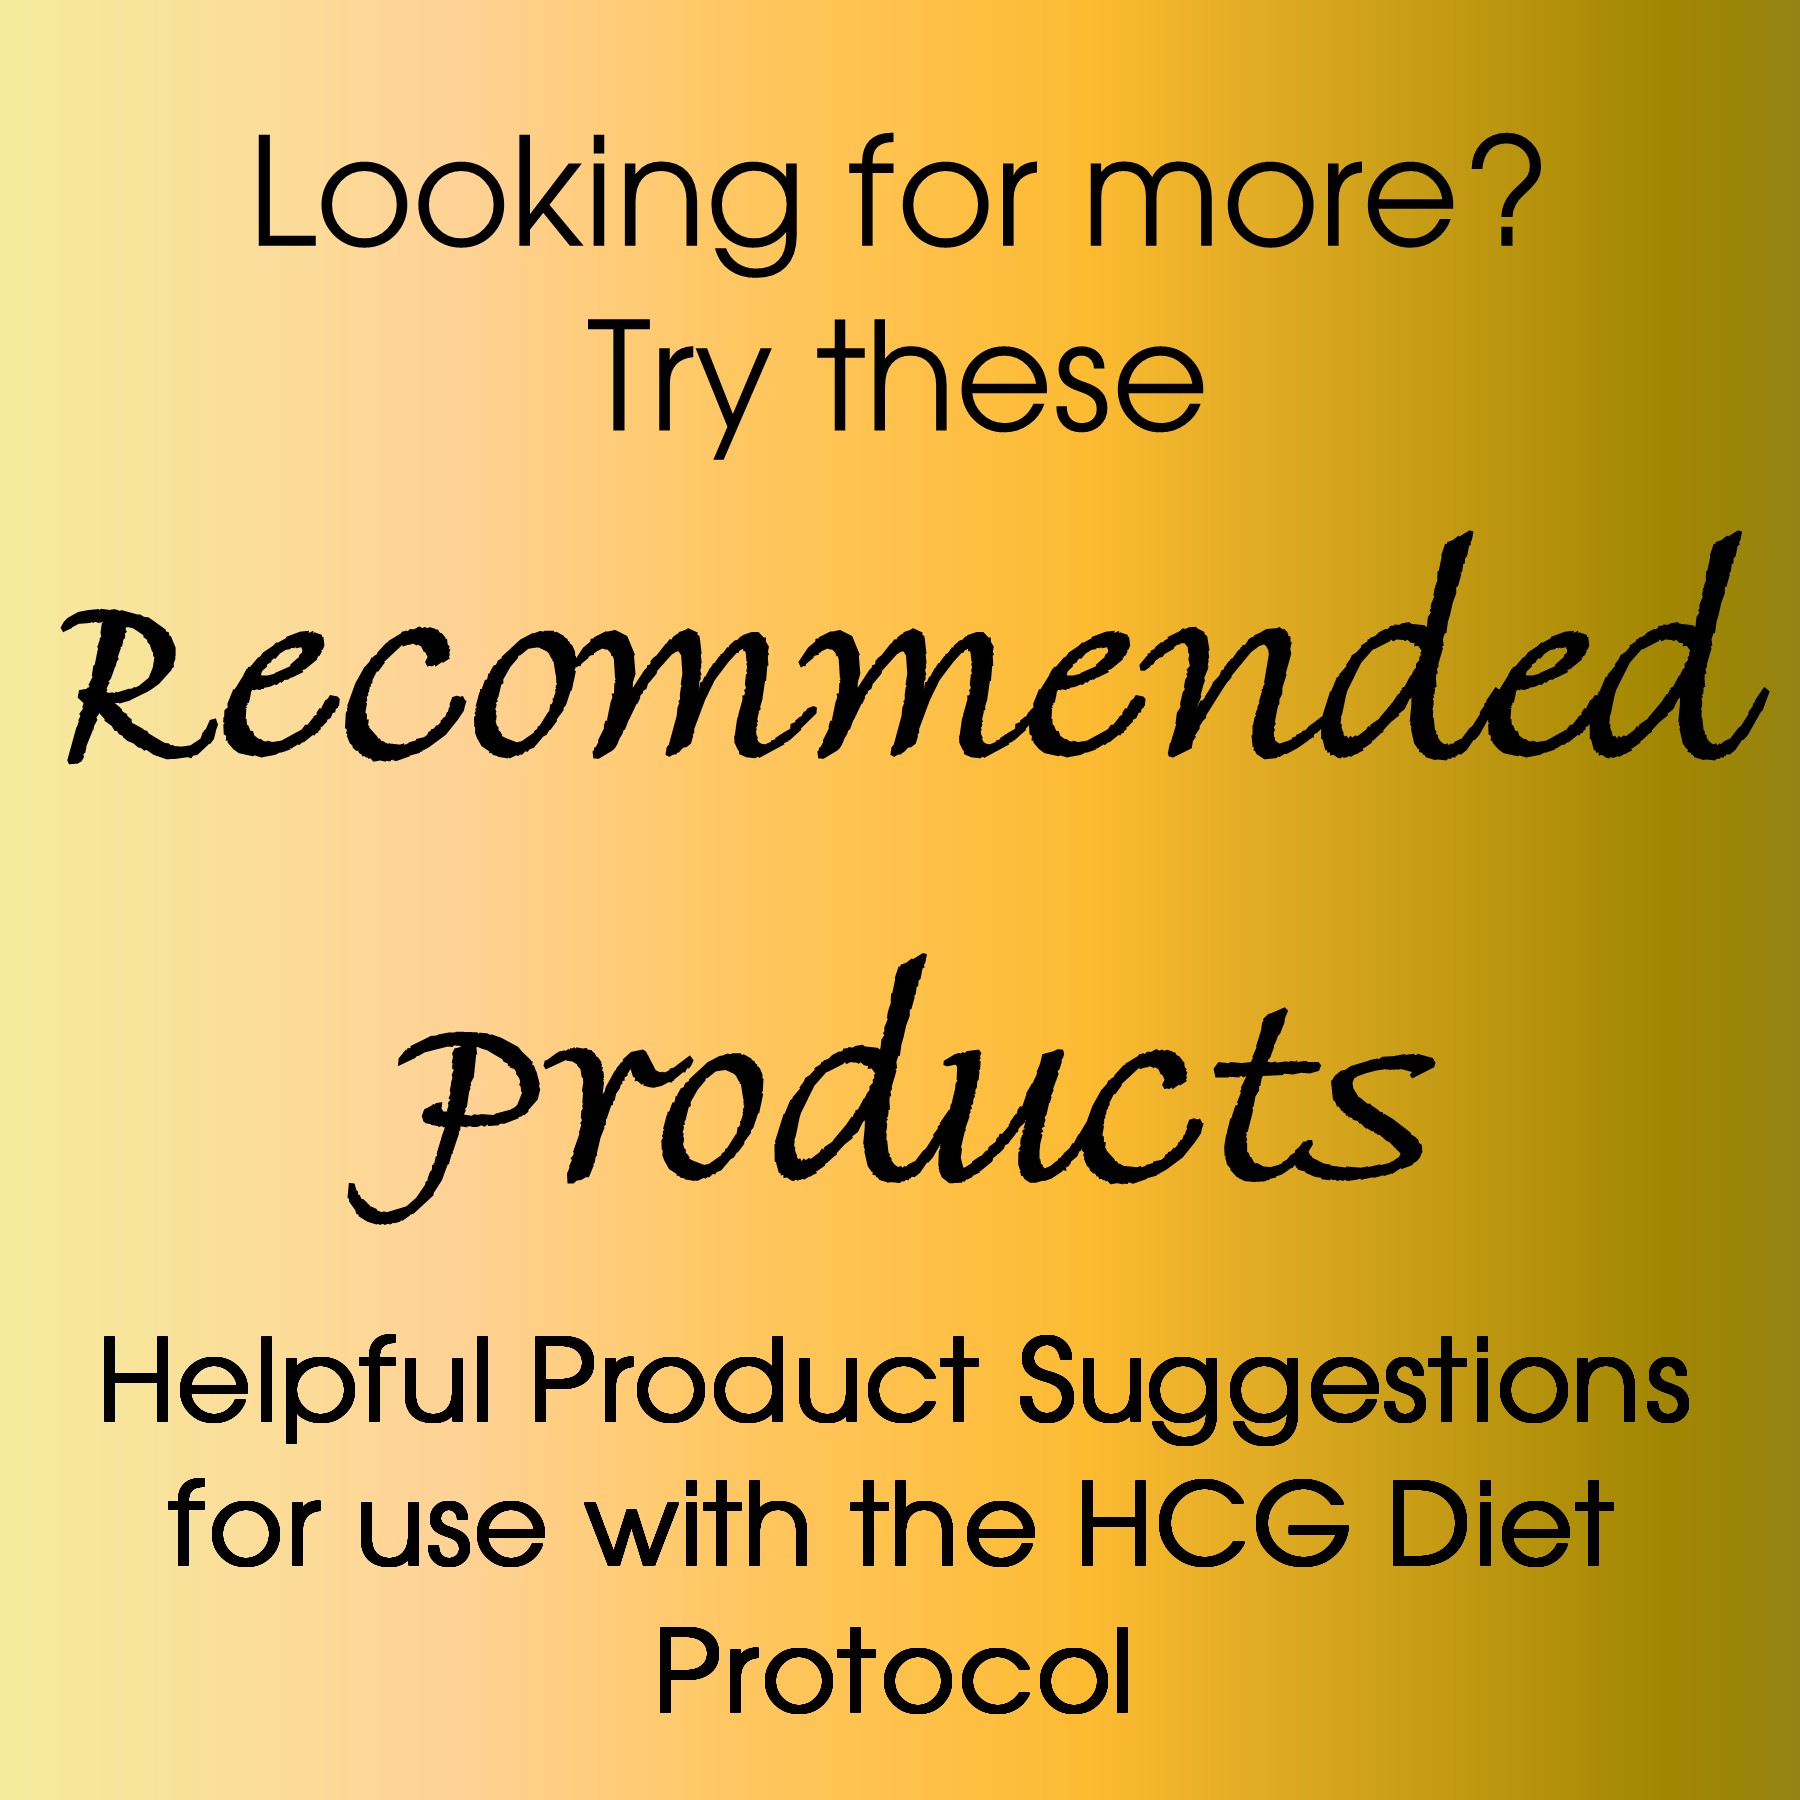 HCG Diet Protocol Recommended Products